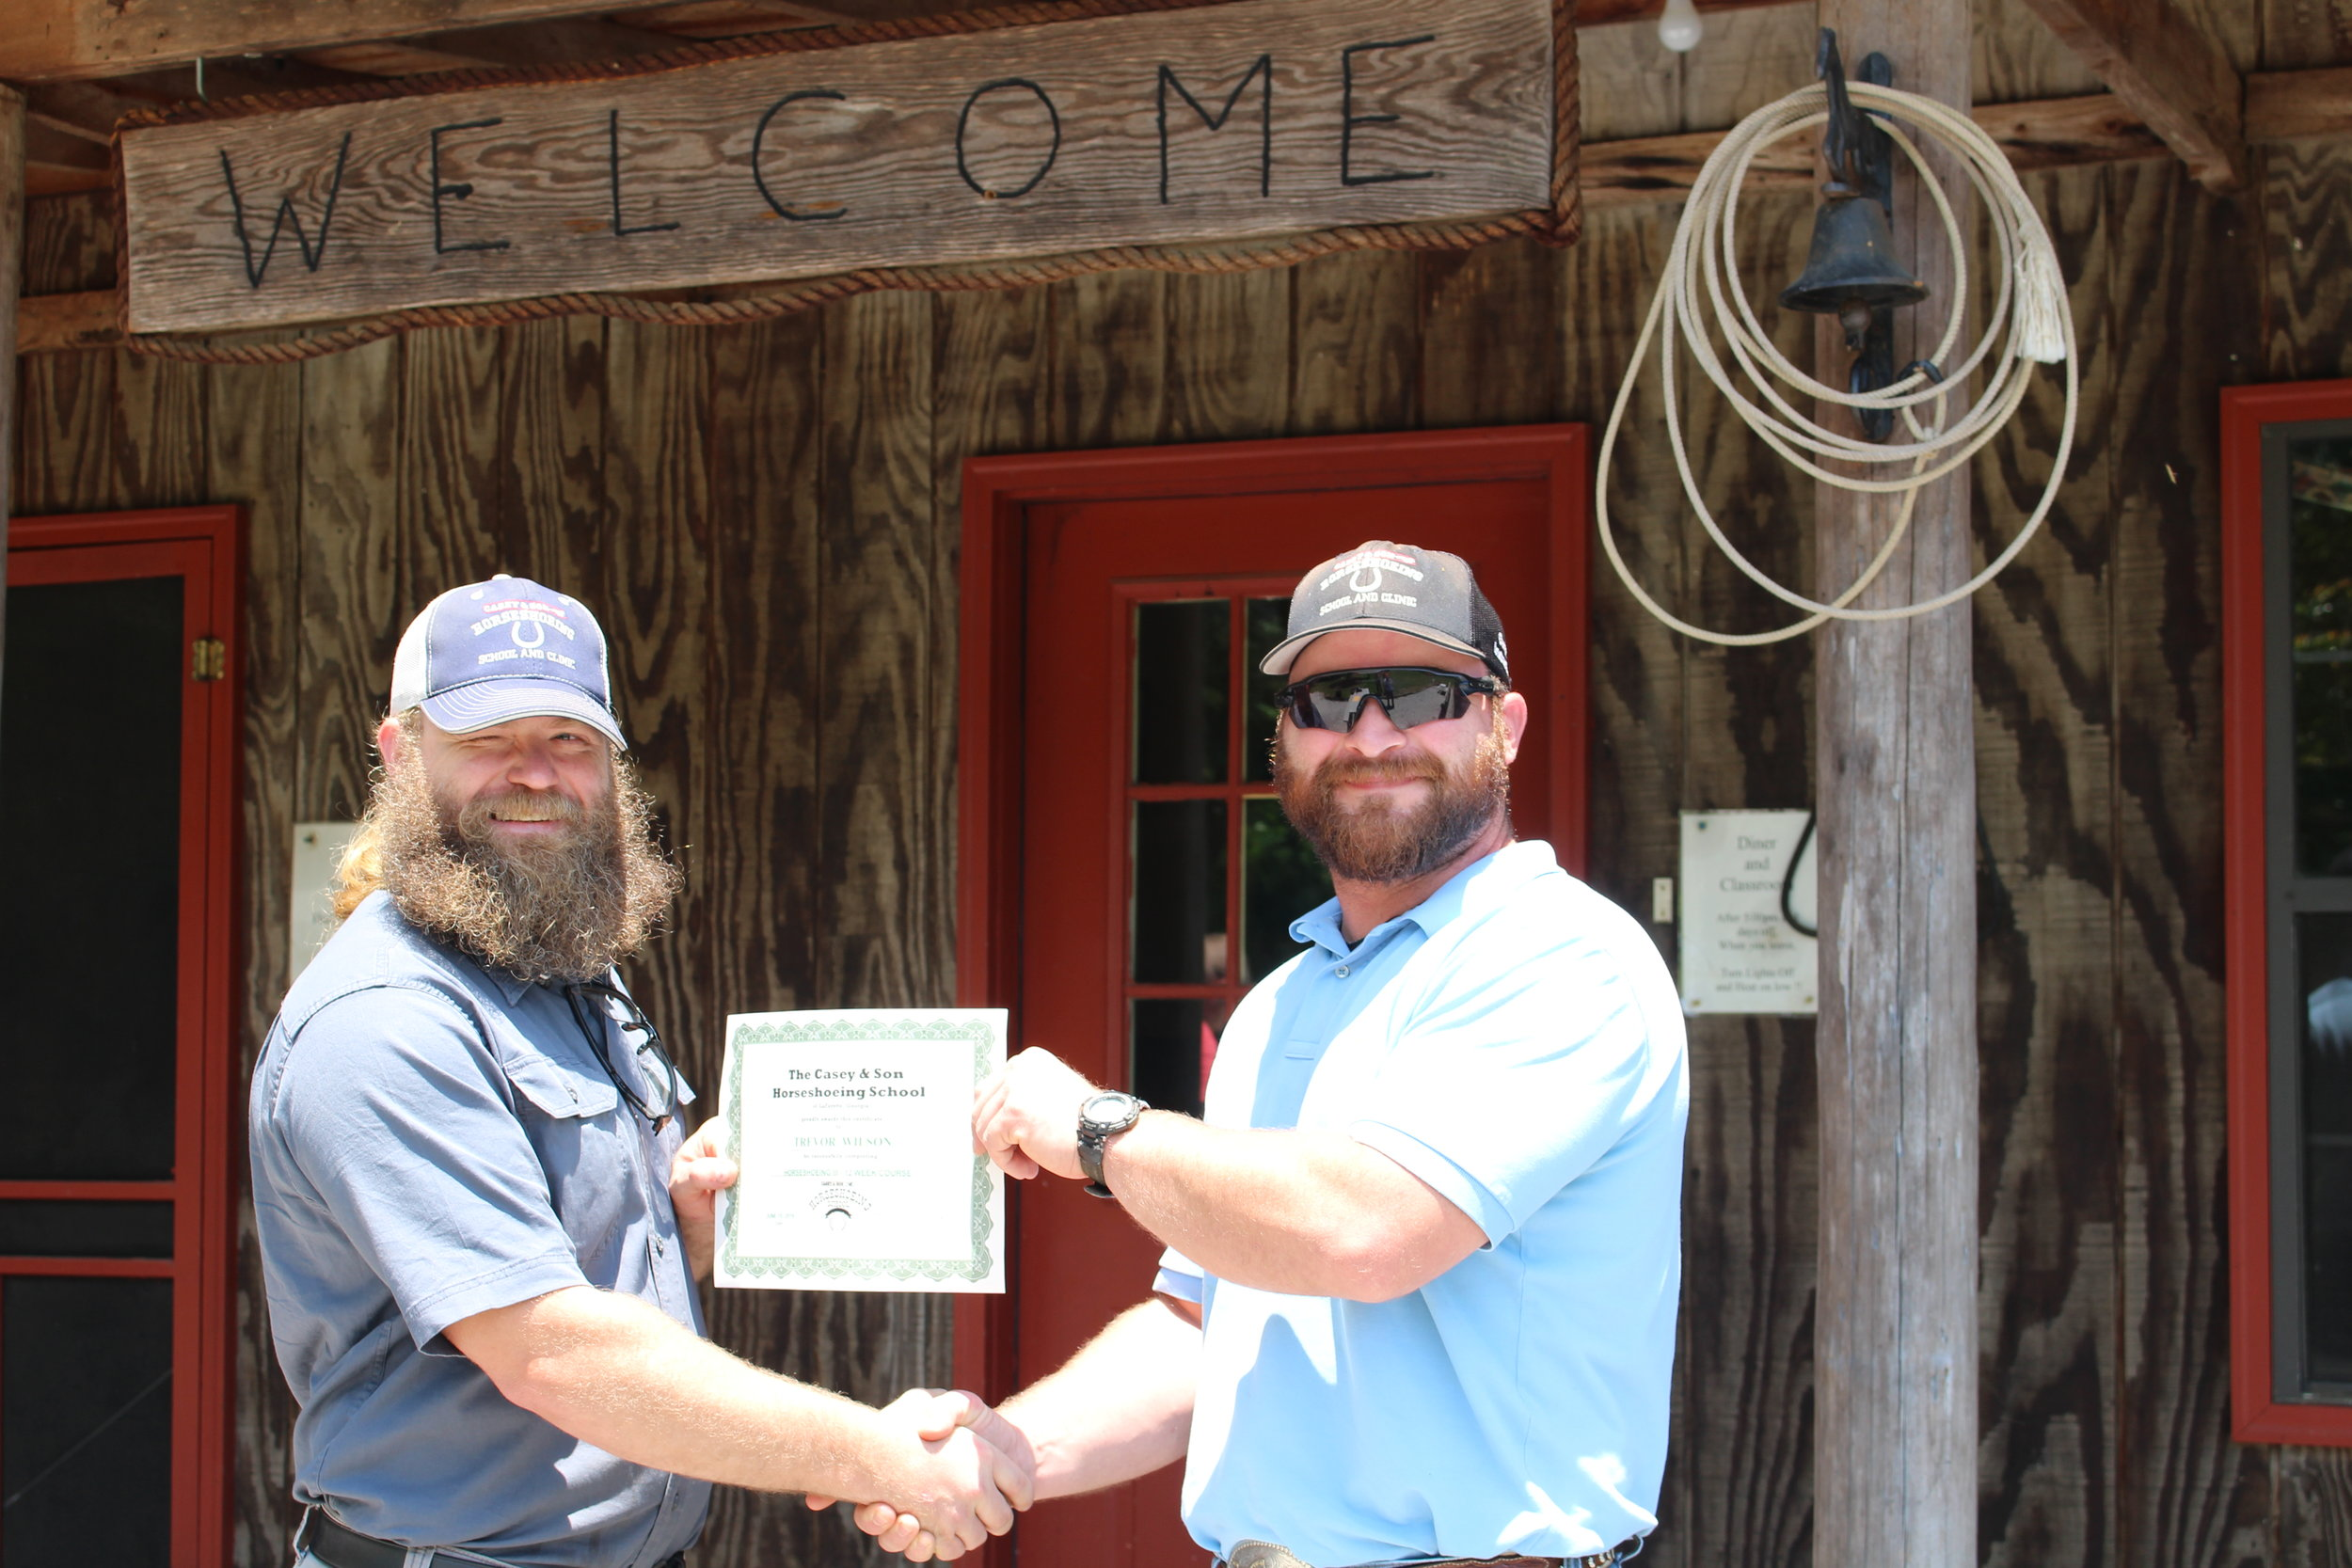 Trevor Wilson, Marietta, Georgia graduates from 16 week Professional Farrier Course at Casey Horseshoeing School in Georgia. With Link Casey, (r) Owner, Instructor, Master Farrier 6.15.19